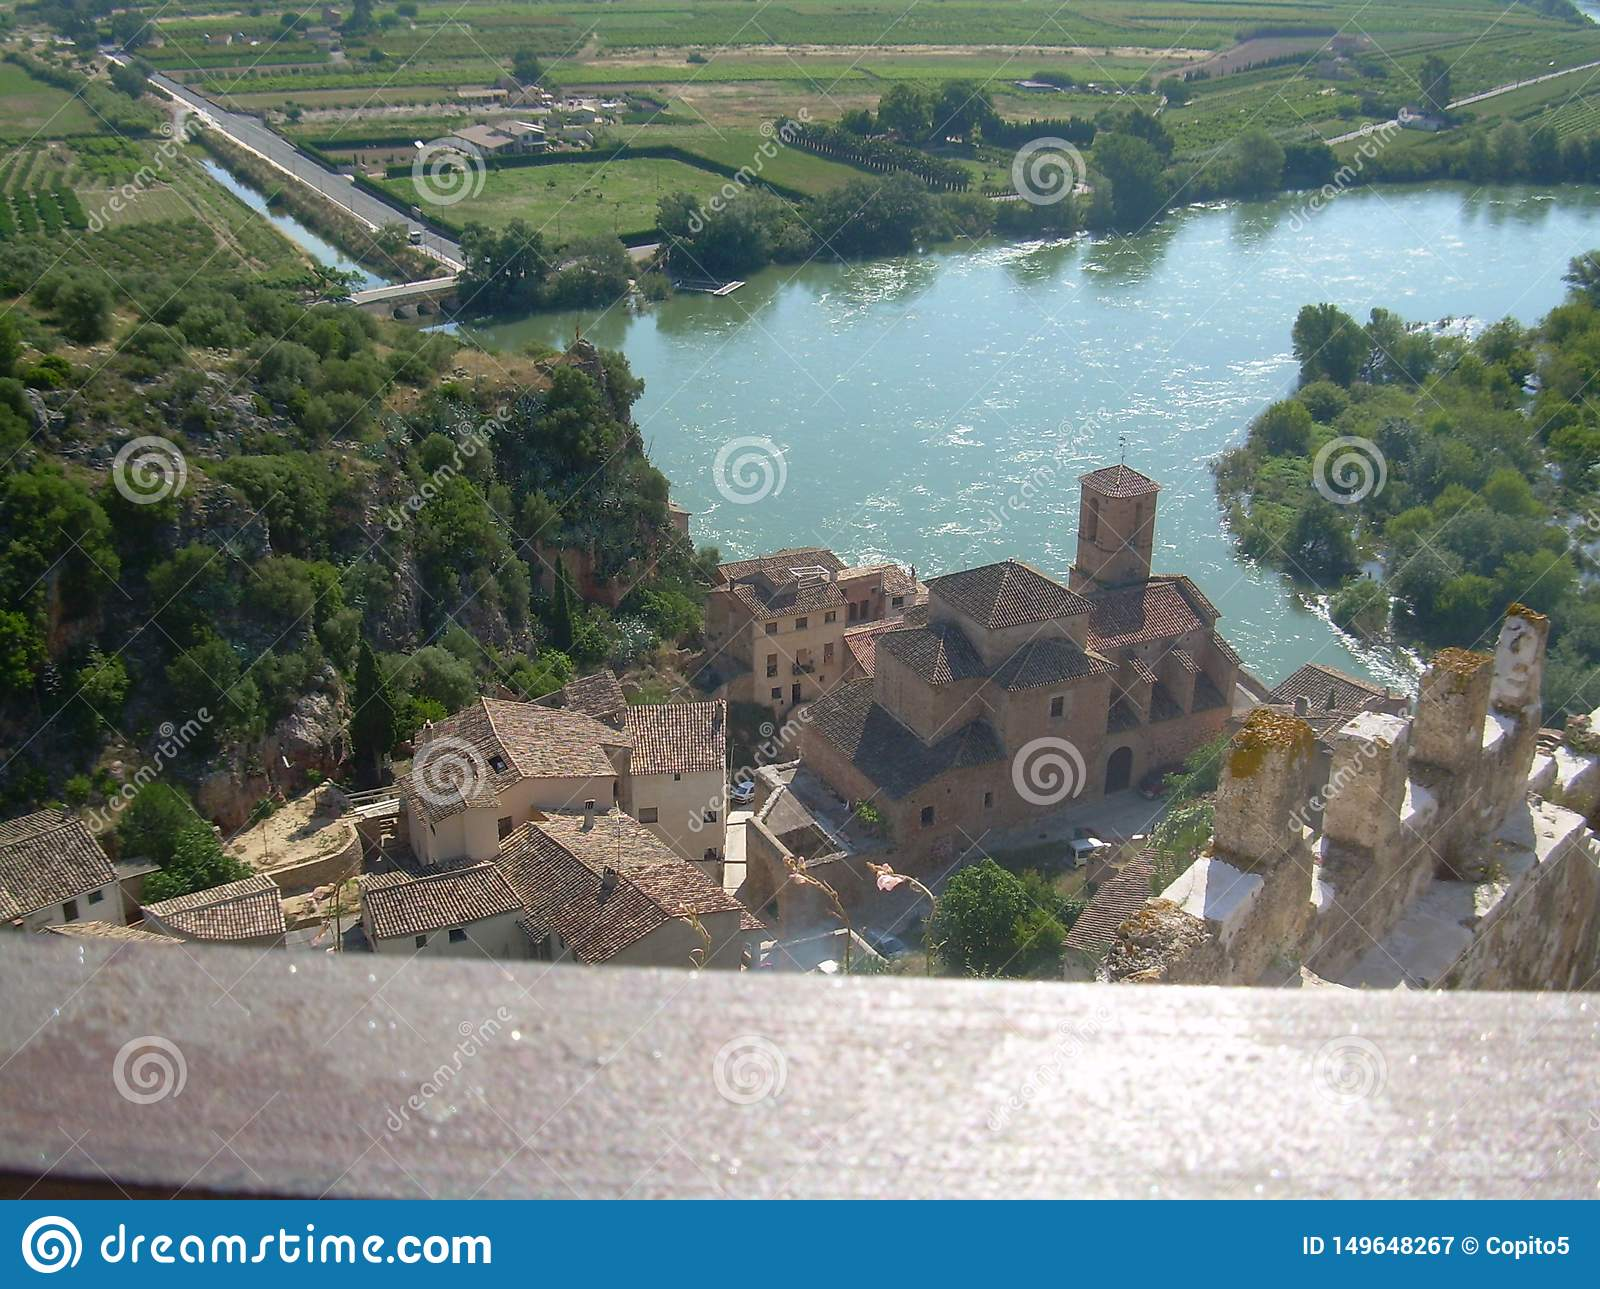 The town of Miravet with the river Ebro, Tarragona